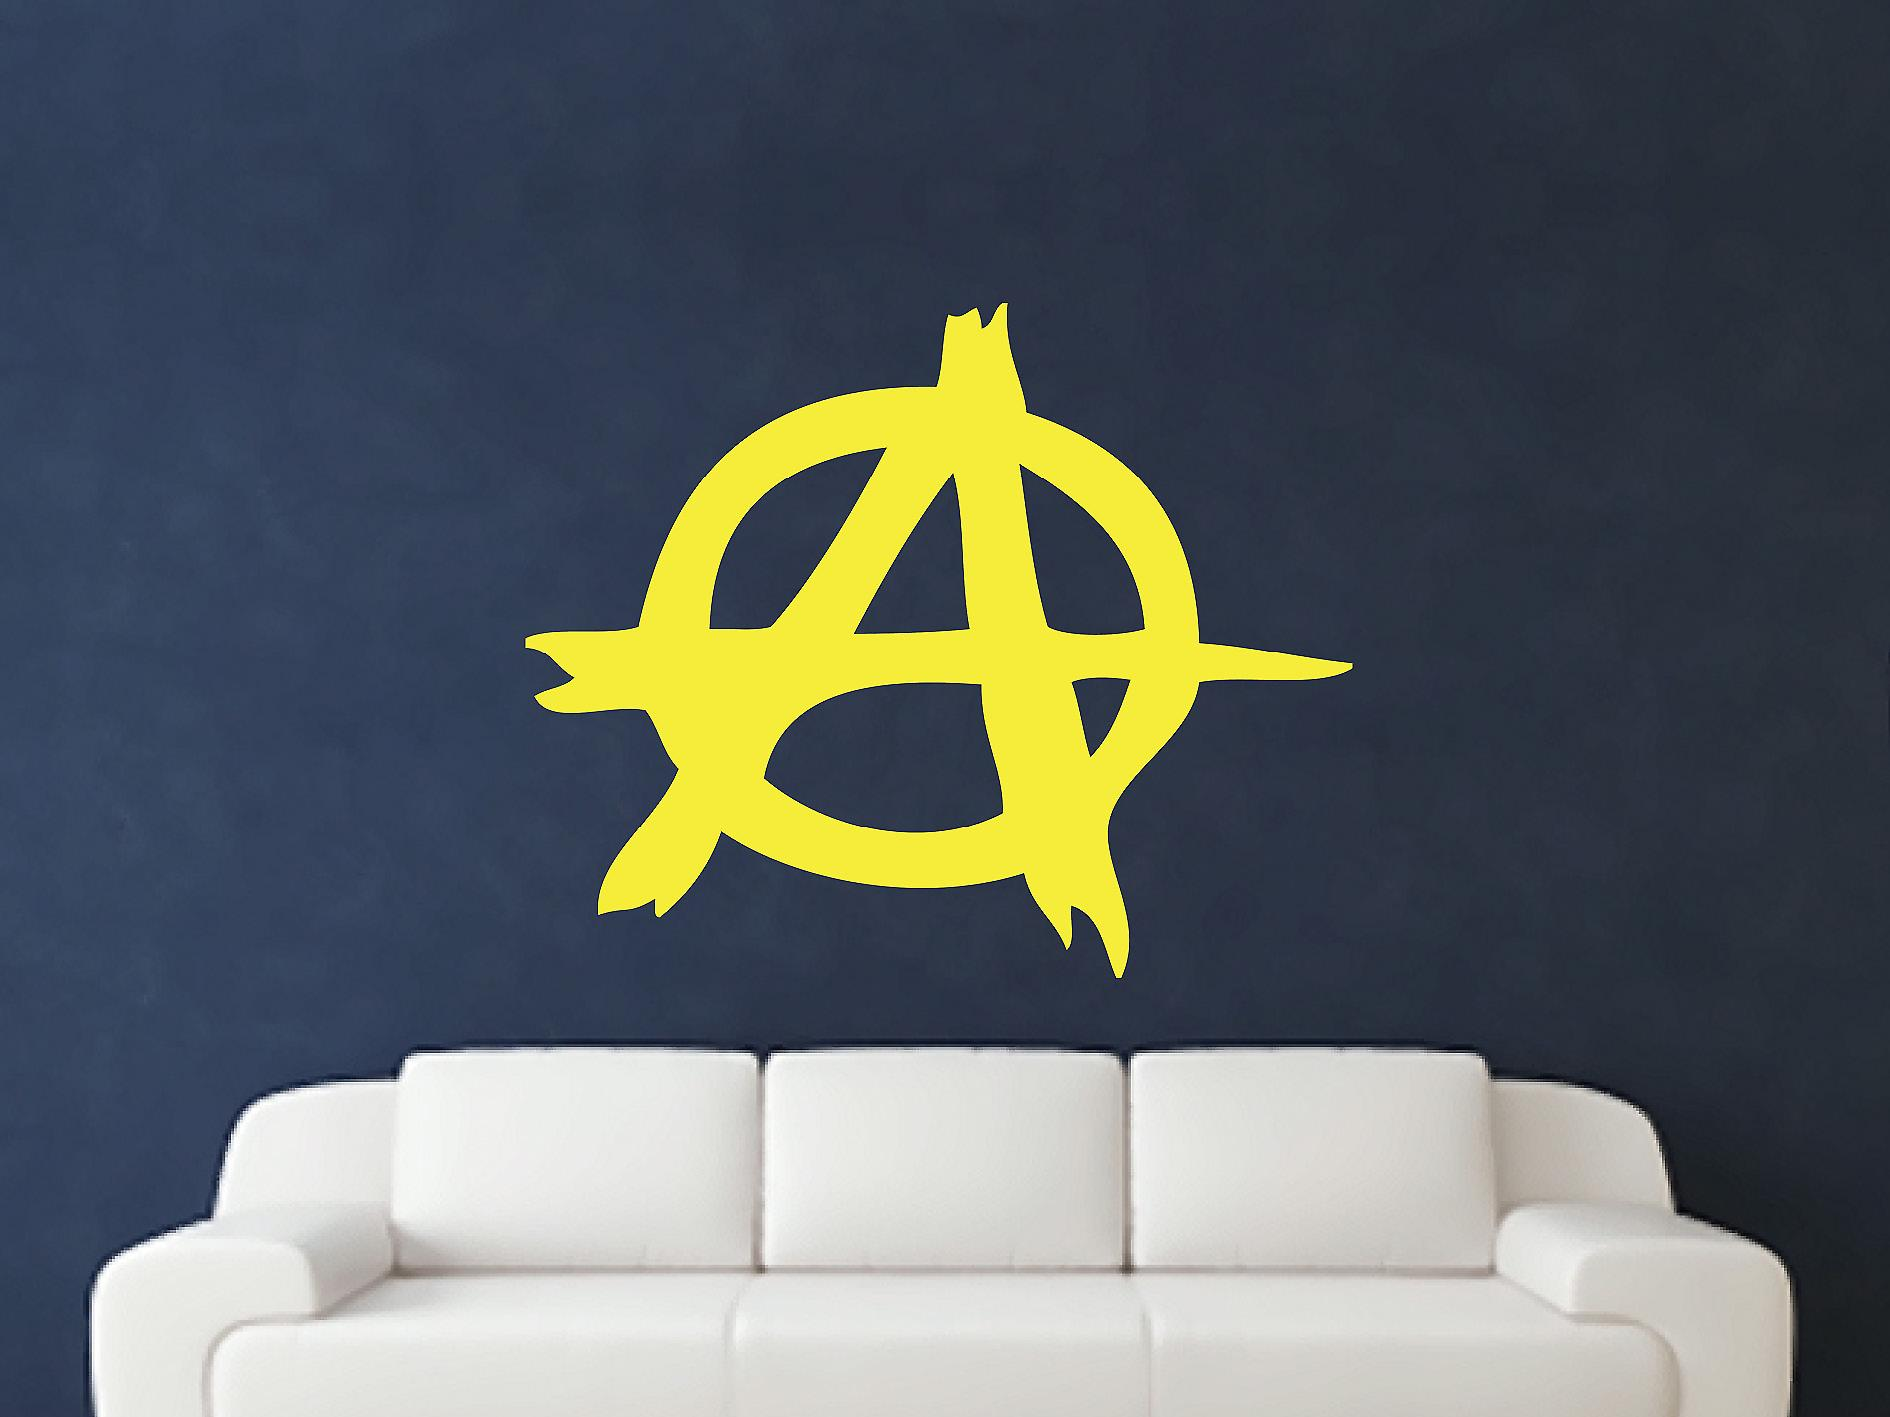 Anarchy Symbol Wall Art Sticker - Sulphur